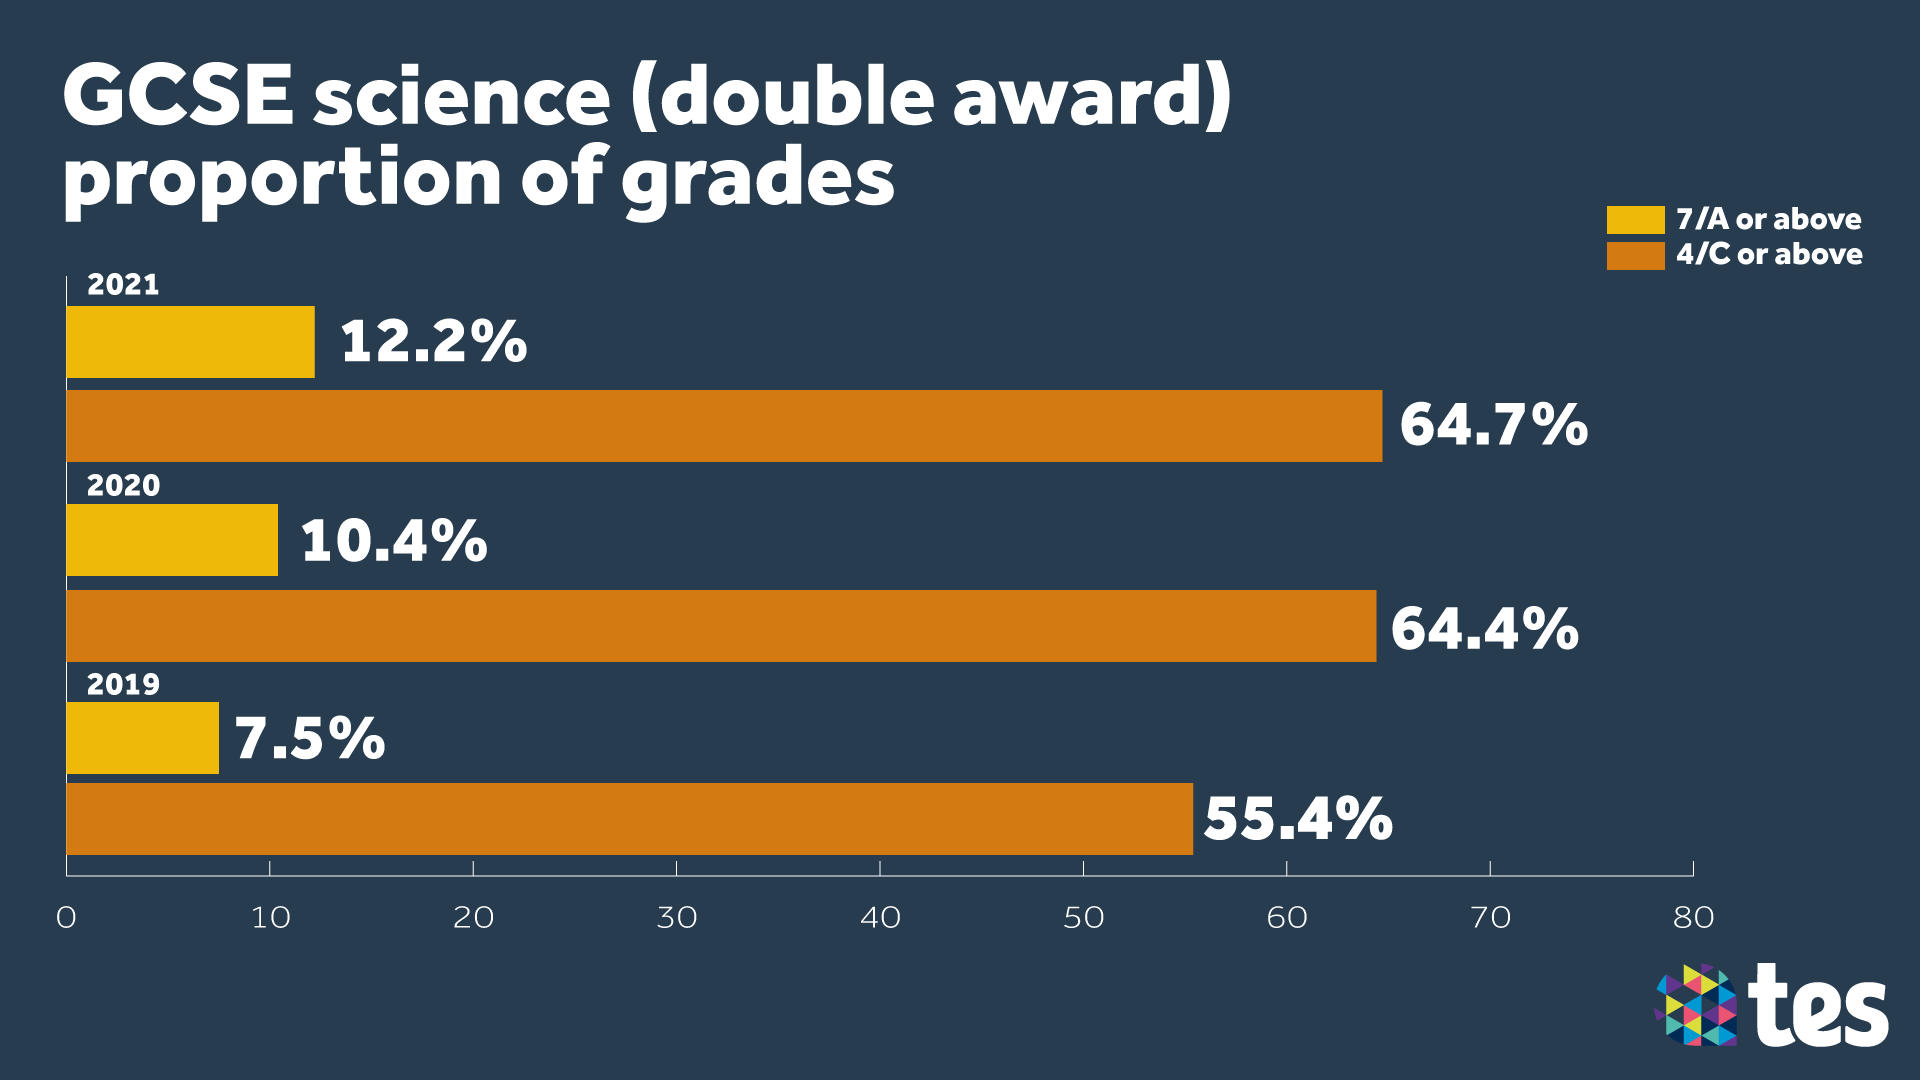 GCSE Results Day 2021 double award